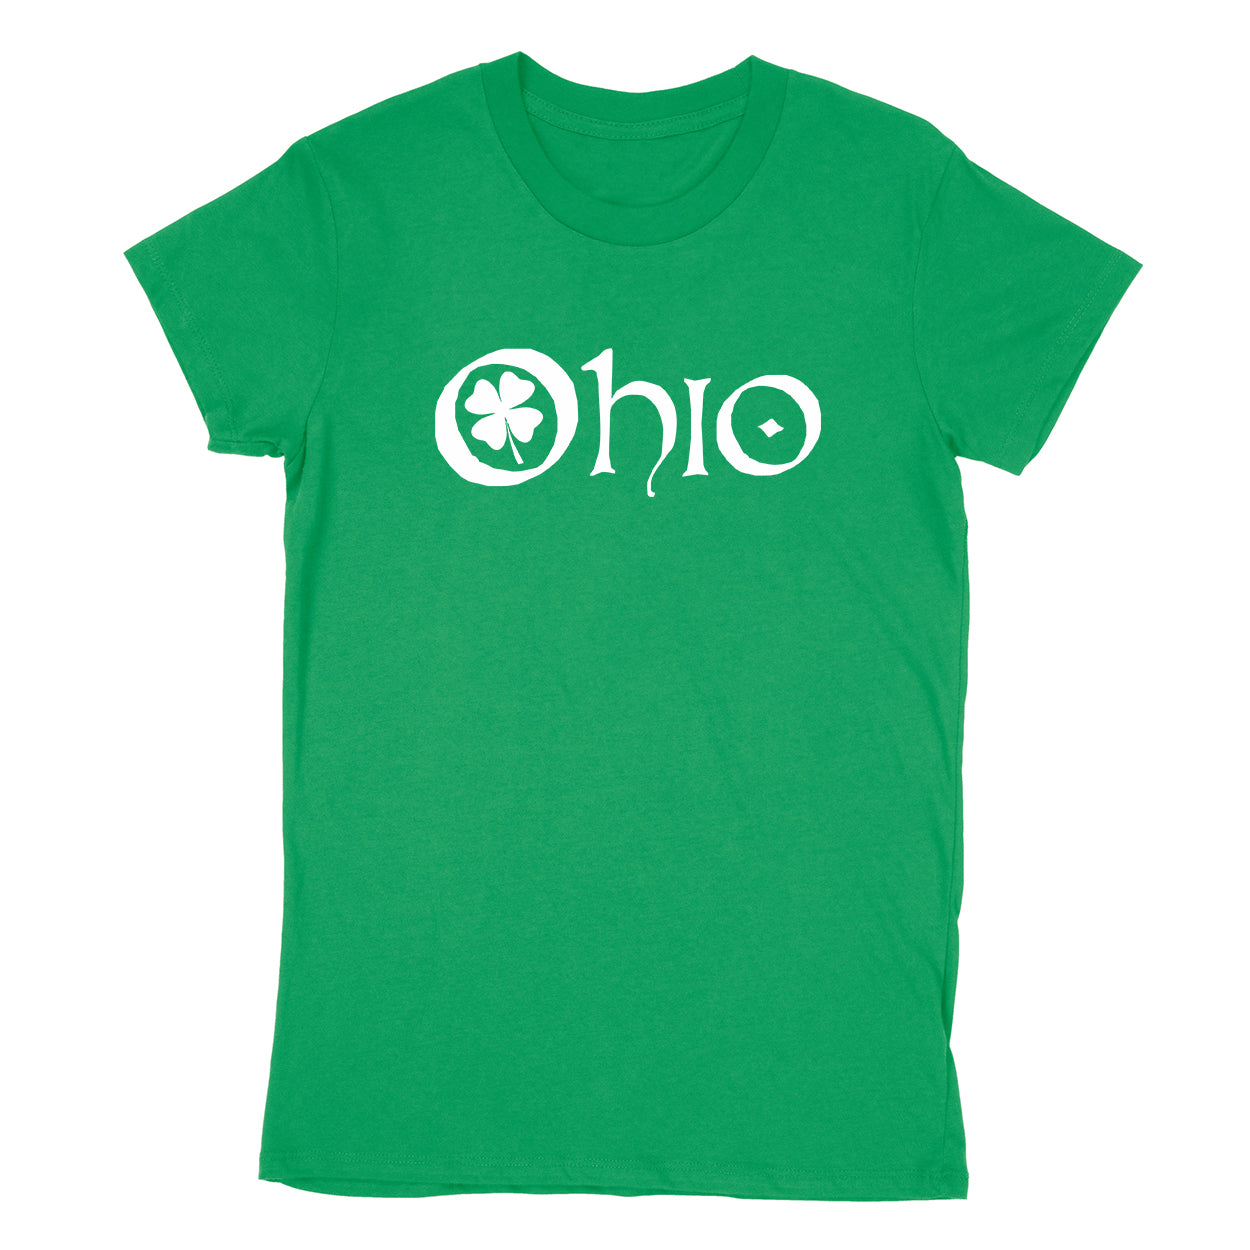 Ohio Clover Women's T-Shirt - Clothe Ohio - Soft Ohio Shirts